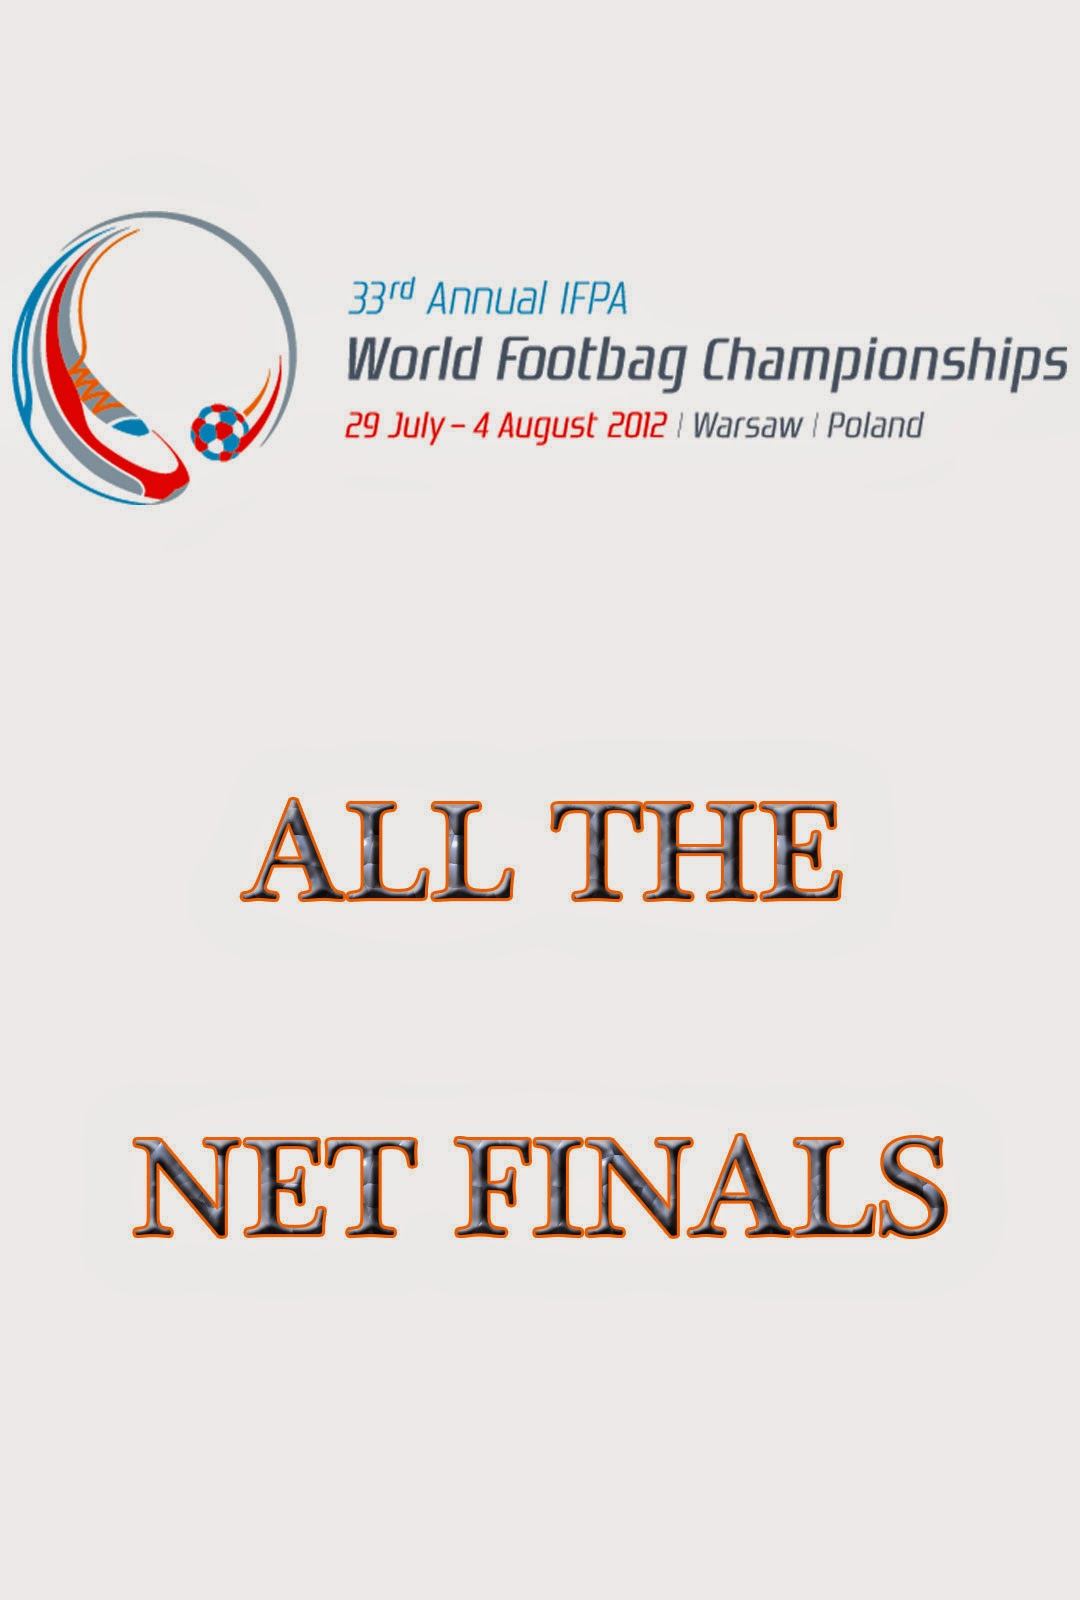 2012 World Footbag Championships net finals Virtual DVD poster